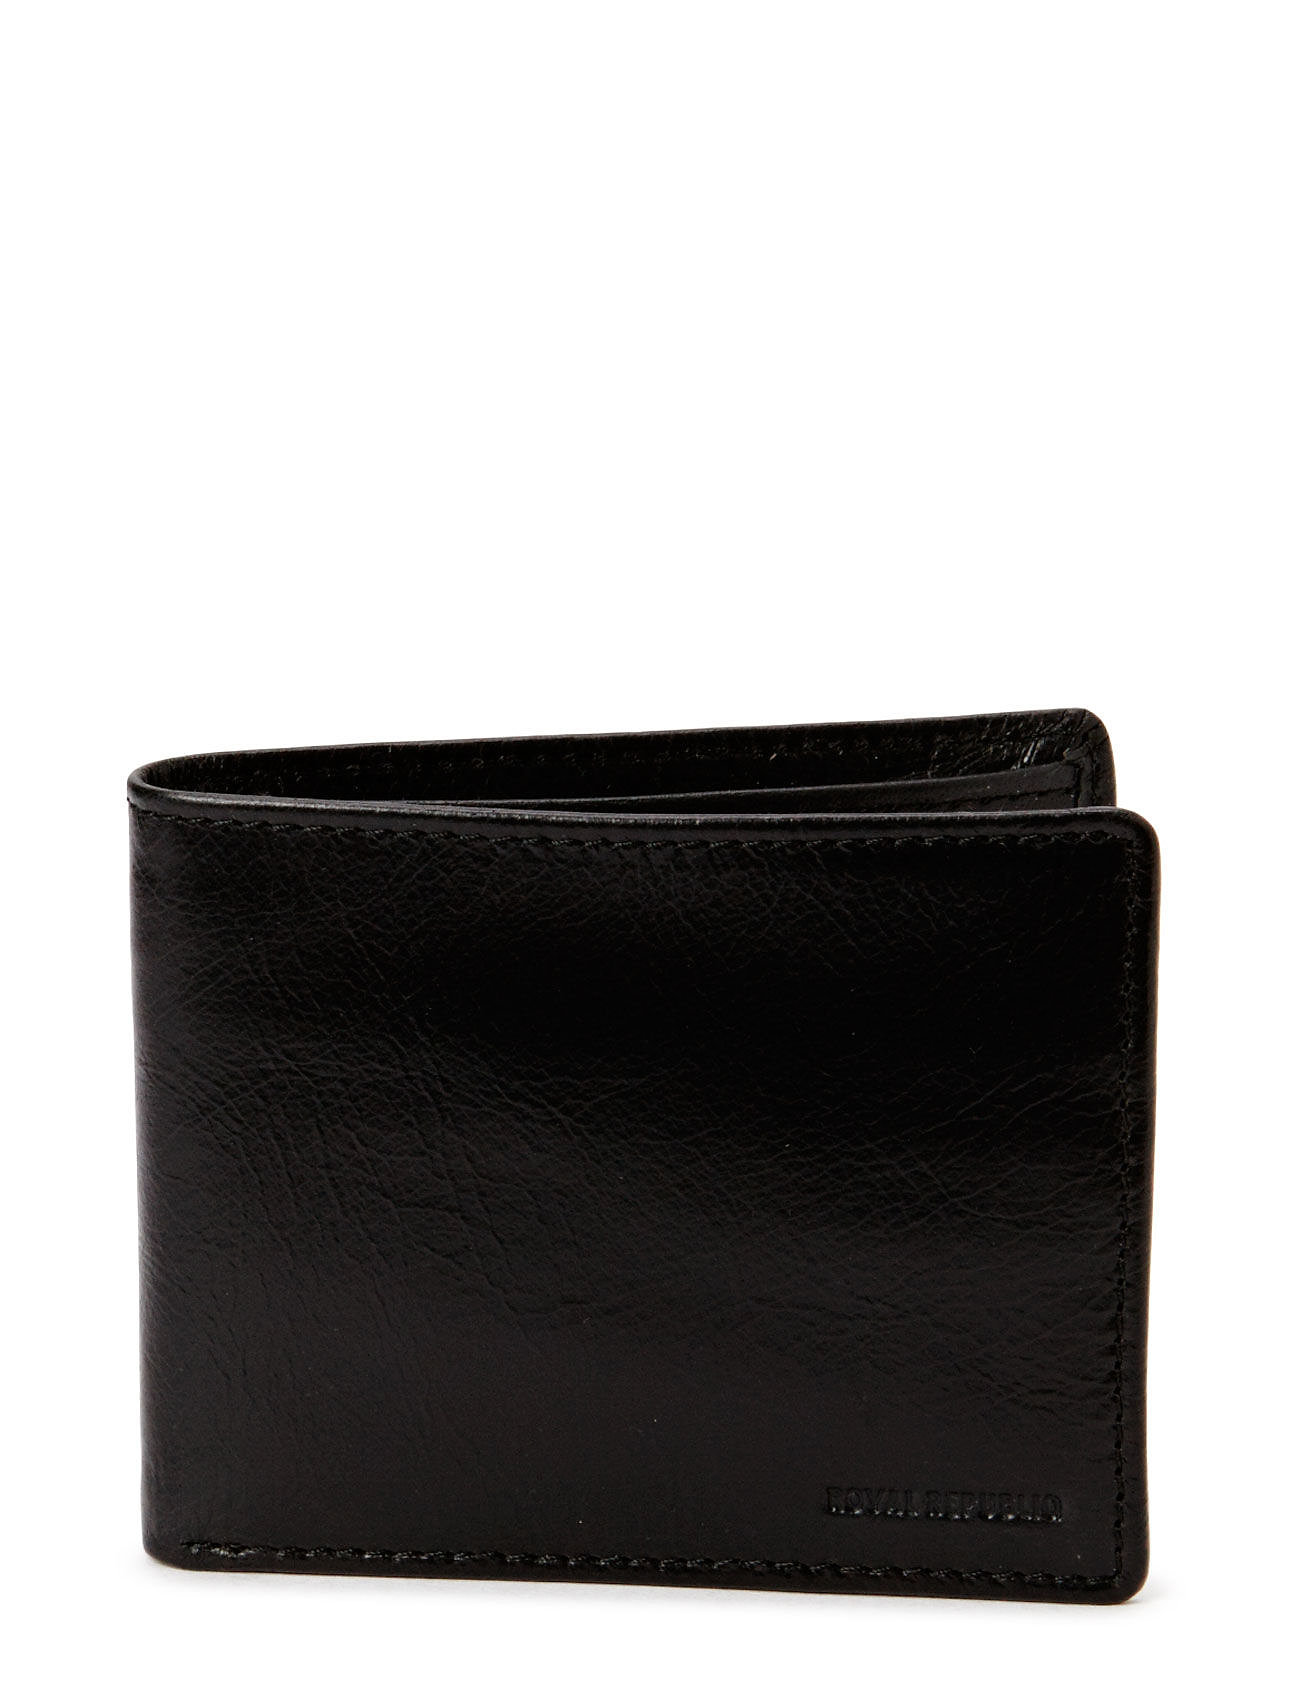 Royal RepubliQ City wallet